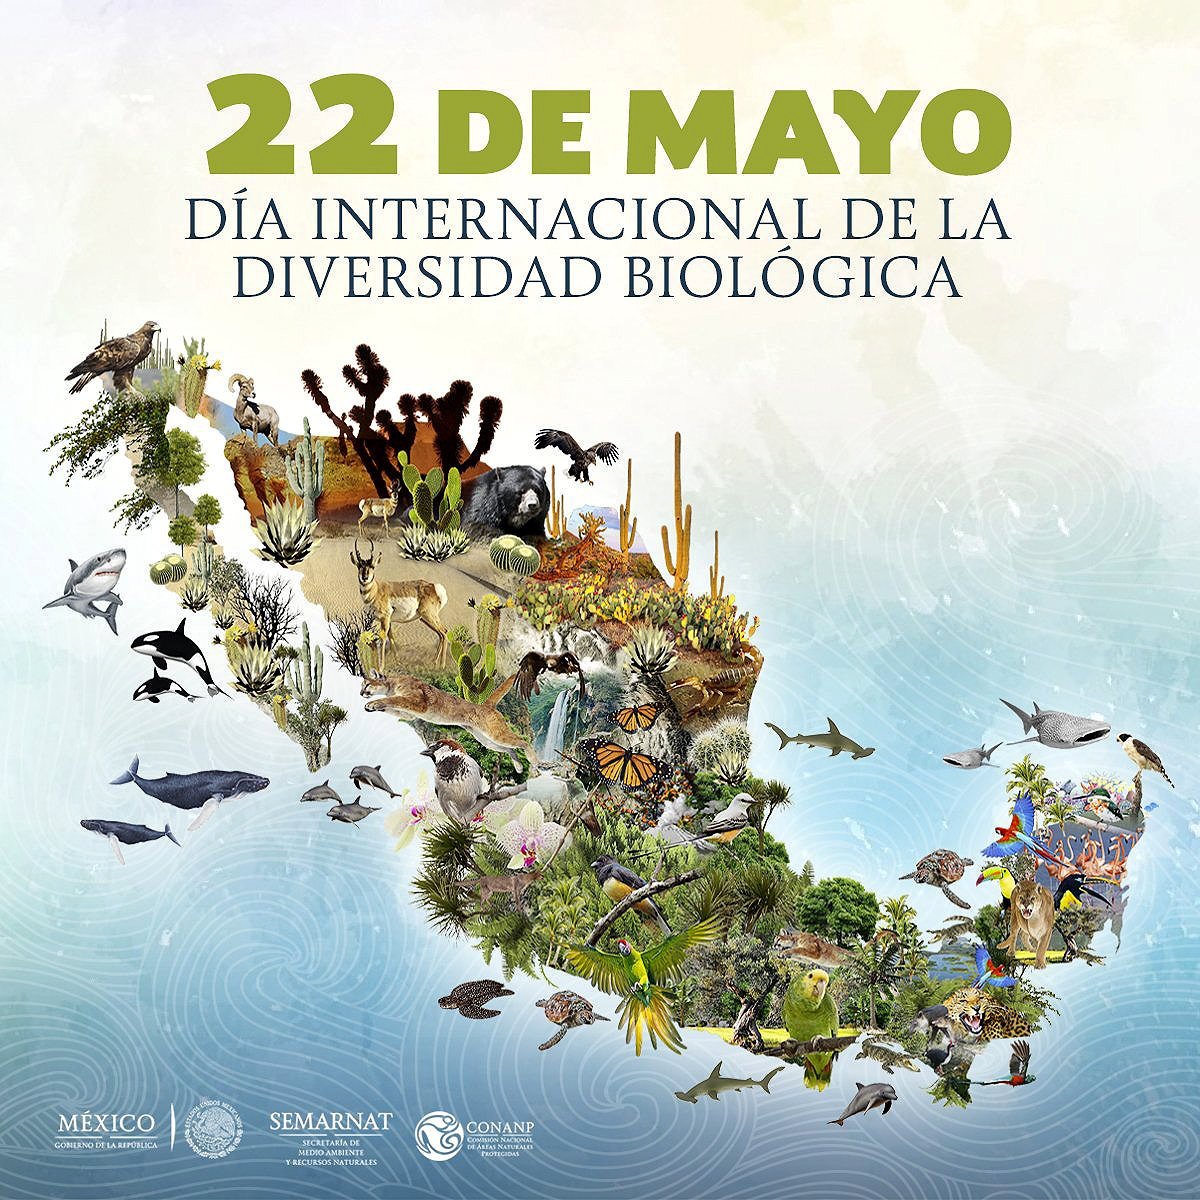 Biodiversity map of Mexico